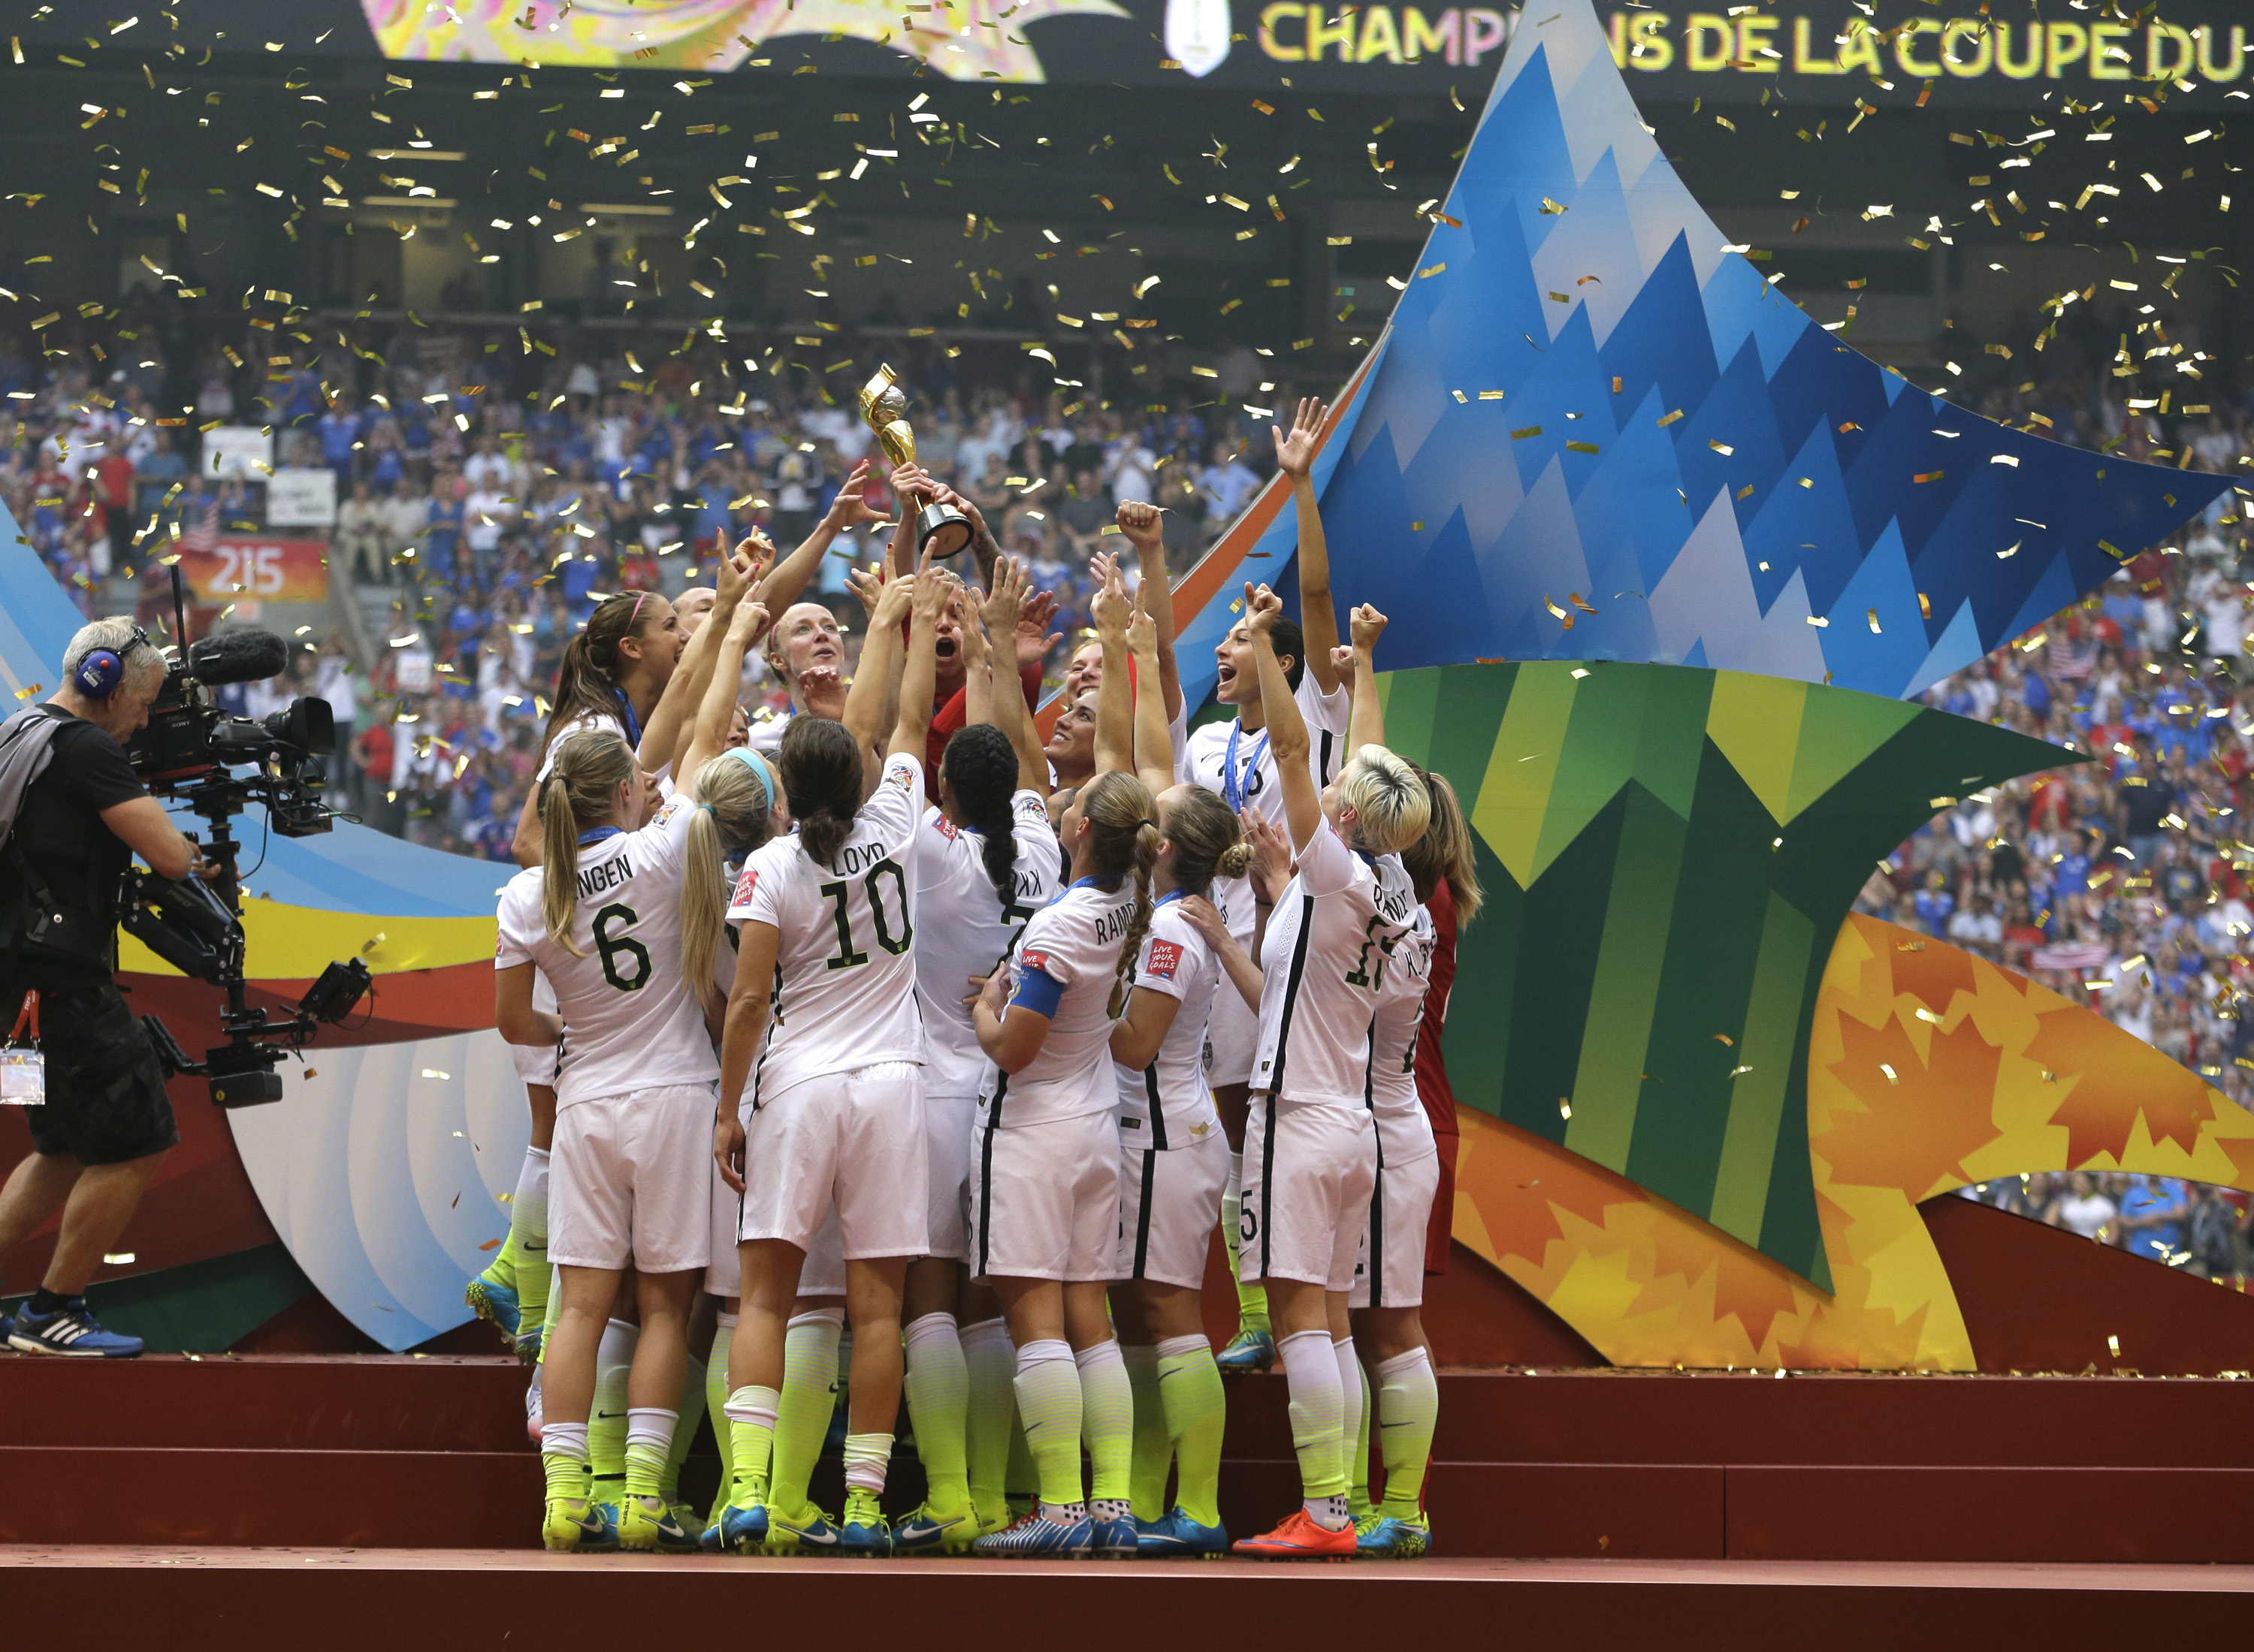 In this July 5, 2015 file photo, confetti floats down as the United States Women's National Team women celebrate with their trophy after beating Japan 5-2 in the FIFA Women's World Cup soccer championship in Vancouver, Canada. On Friday July 10, 2015,  in New York, the team will make their way through swirling ticker tape up Broadway's Canyon of Heroes to a ceremony at City Hall, where they will be the first national team since 1984 and the first all-female team ever to be honored with the iconic parade.  Photo: AP